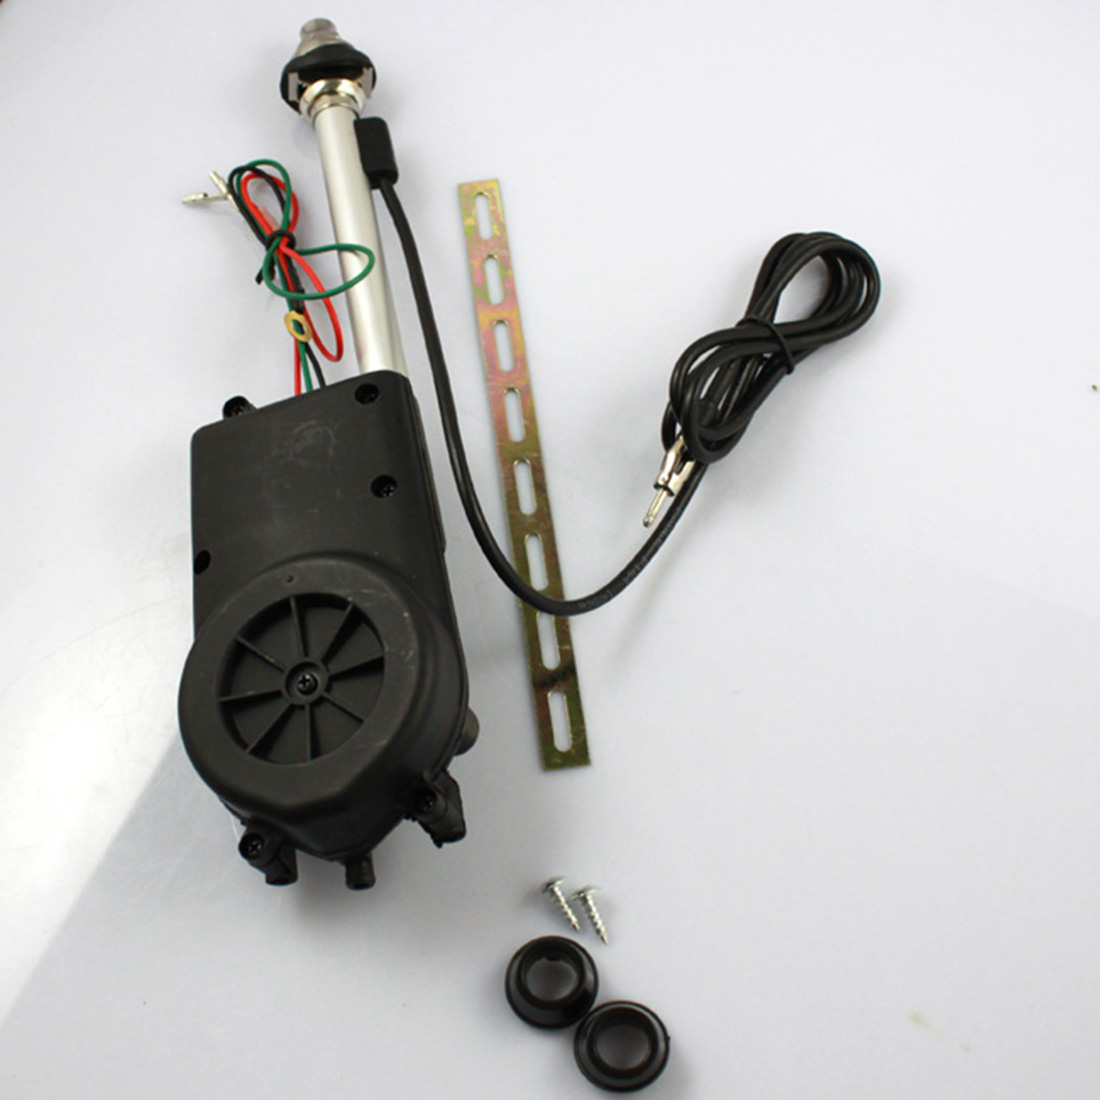 Automatic Radio Car Antenna Free Download Auto Mobile Power Wiring Diagram Marsnaska 2017 Universal Electric Replacement Kit At